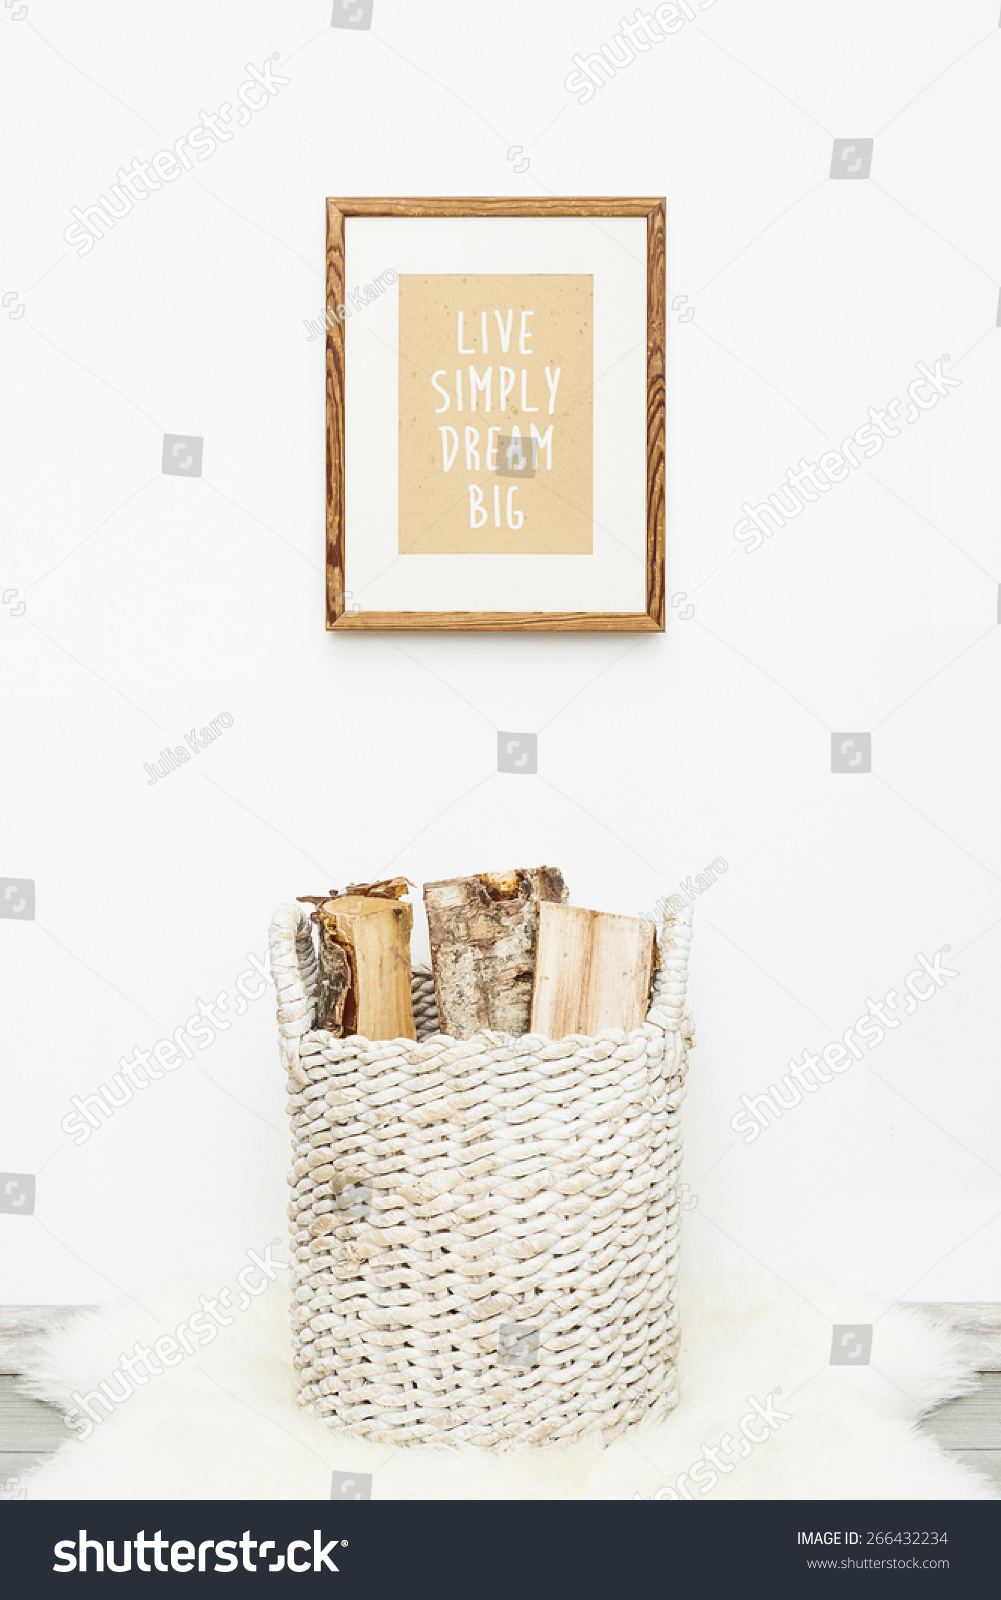 Wooden Frame LIVE SIMPLY DREAM BIG Stock Photo (Royalty Free ...